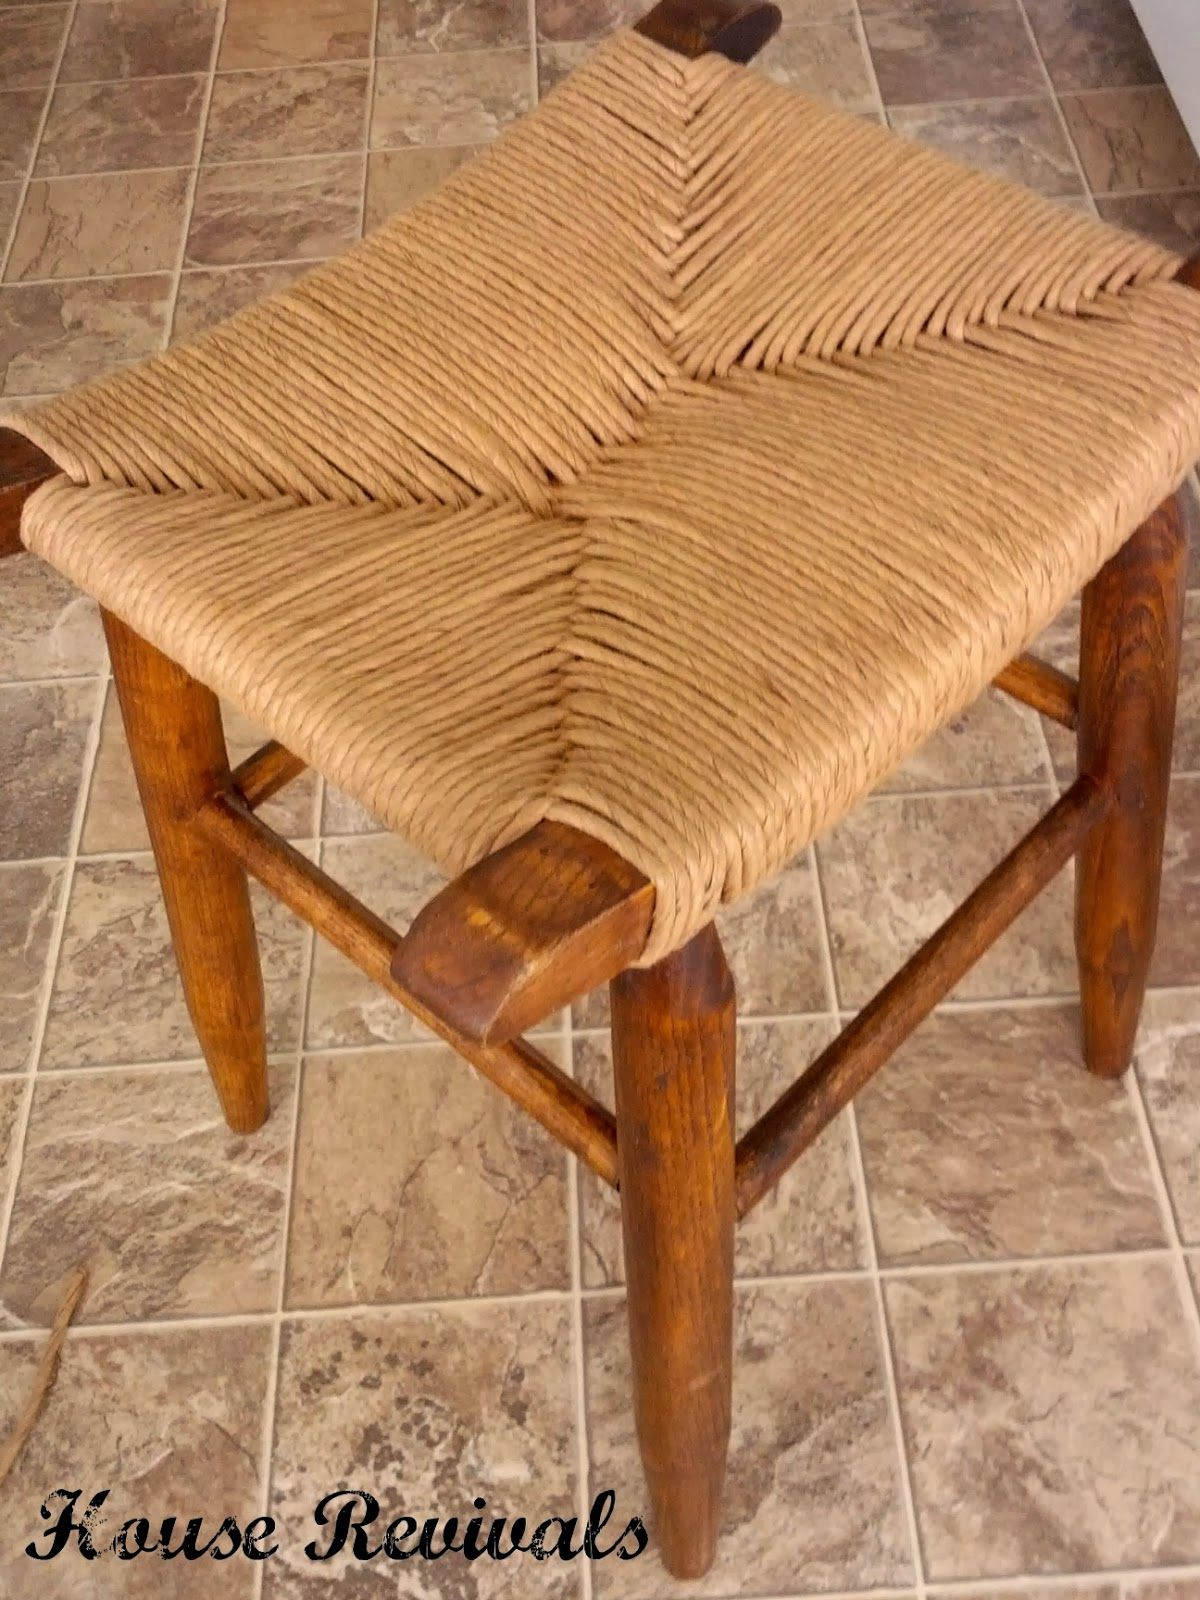 House Revivals How To Weave A Rush Seat Backyard Fun Pinterest